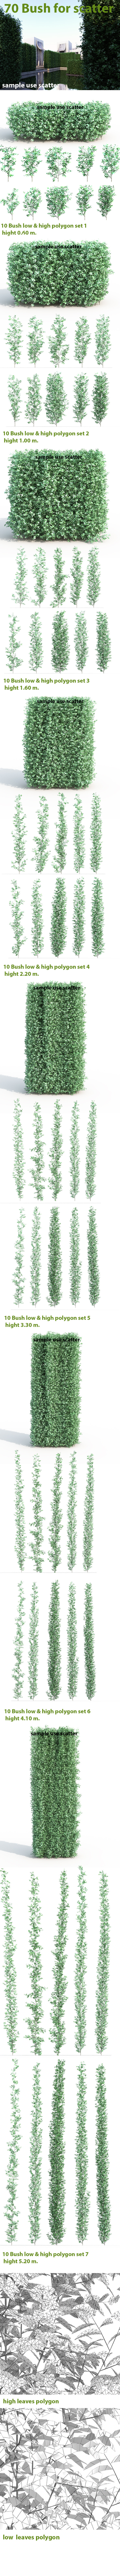 70 Bush For Scatter  - 3DOcean Item for Sale